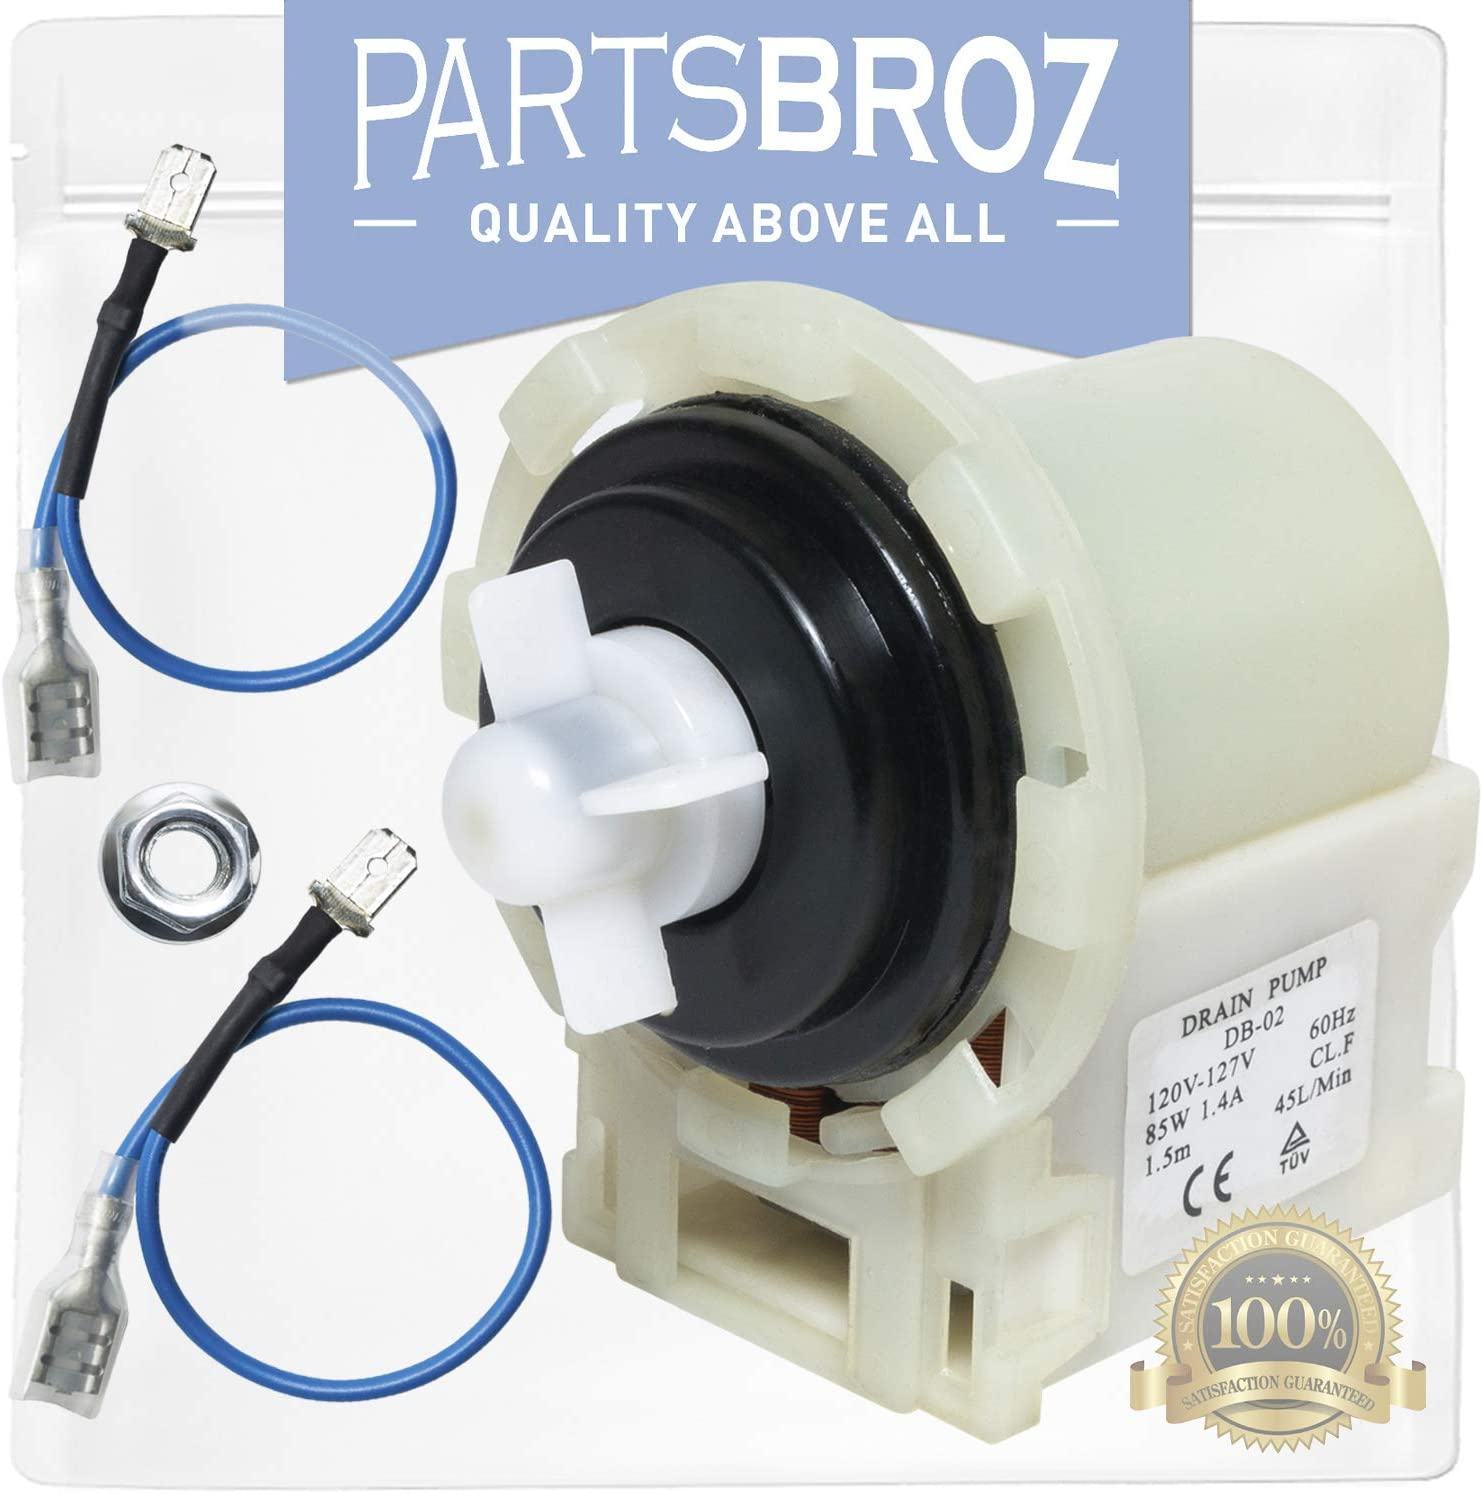 8540024 Water Pump for Whirlpool Washing Machines by PartsBroz - Replaces WPW10730972, AP6023956, W10130913, W10730972, 8540025, 8540027, 8540028, 8540996, PS11757304, W10117829, W10183434, W10190647